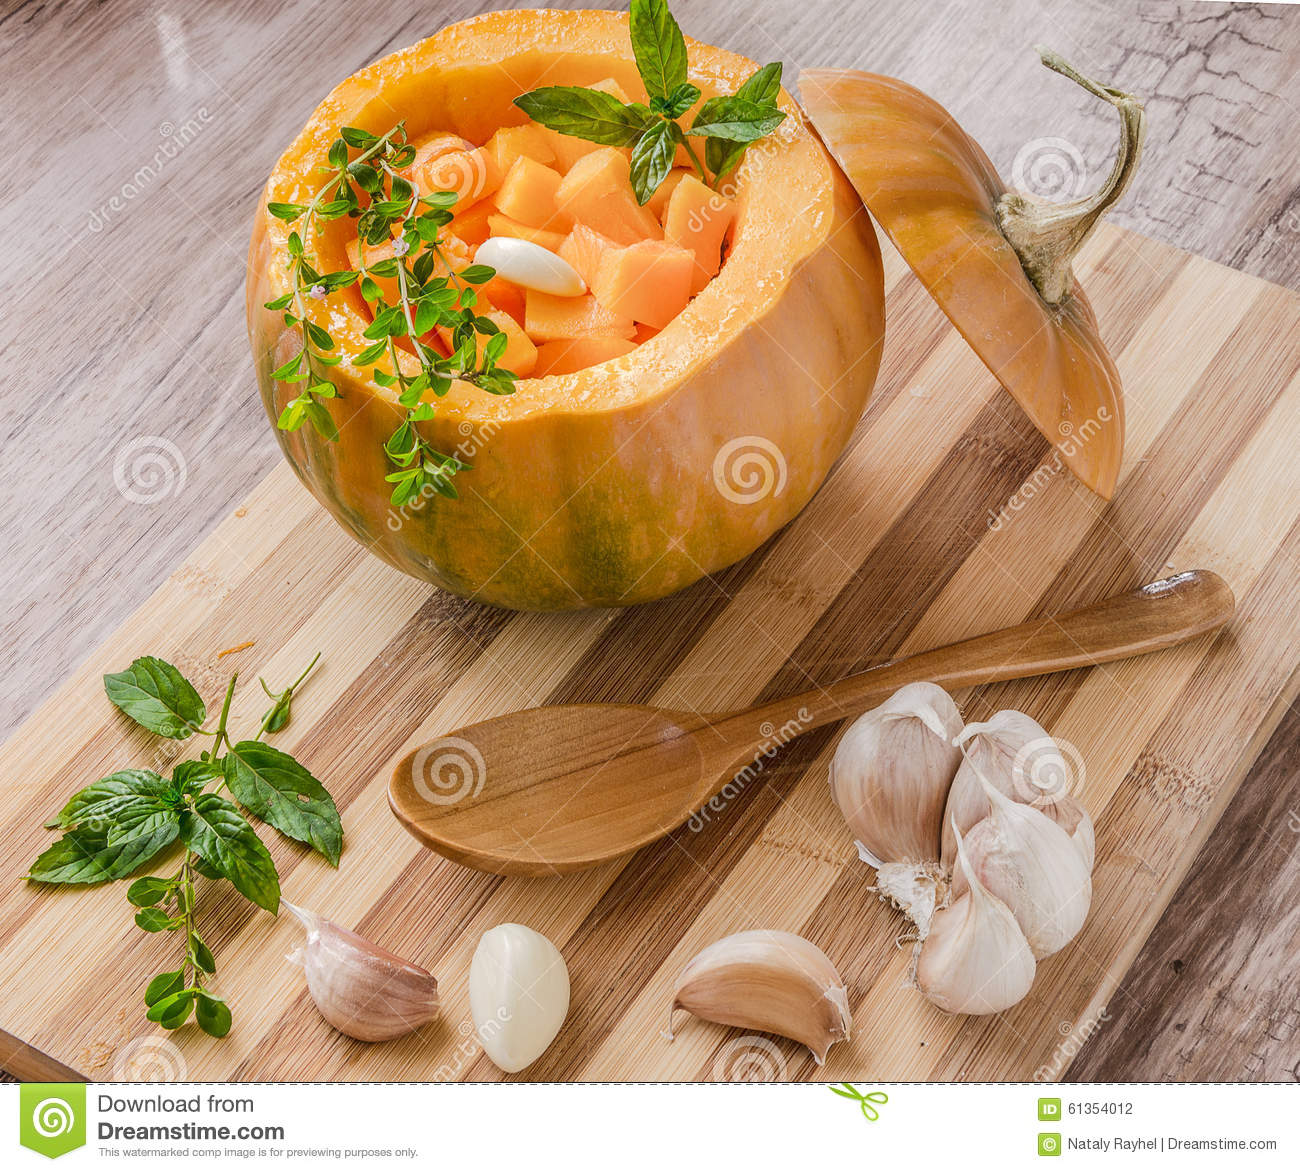 Pumpkin stuffed with garlic and herbs on a cutting board.